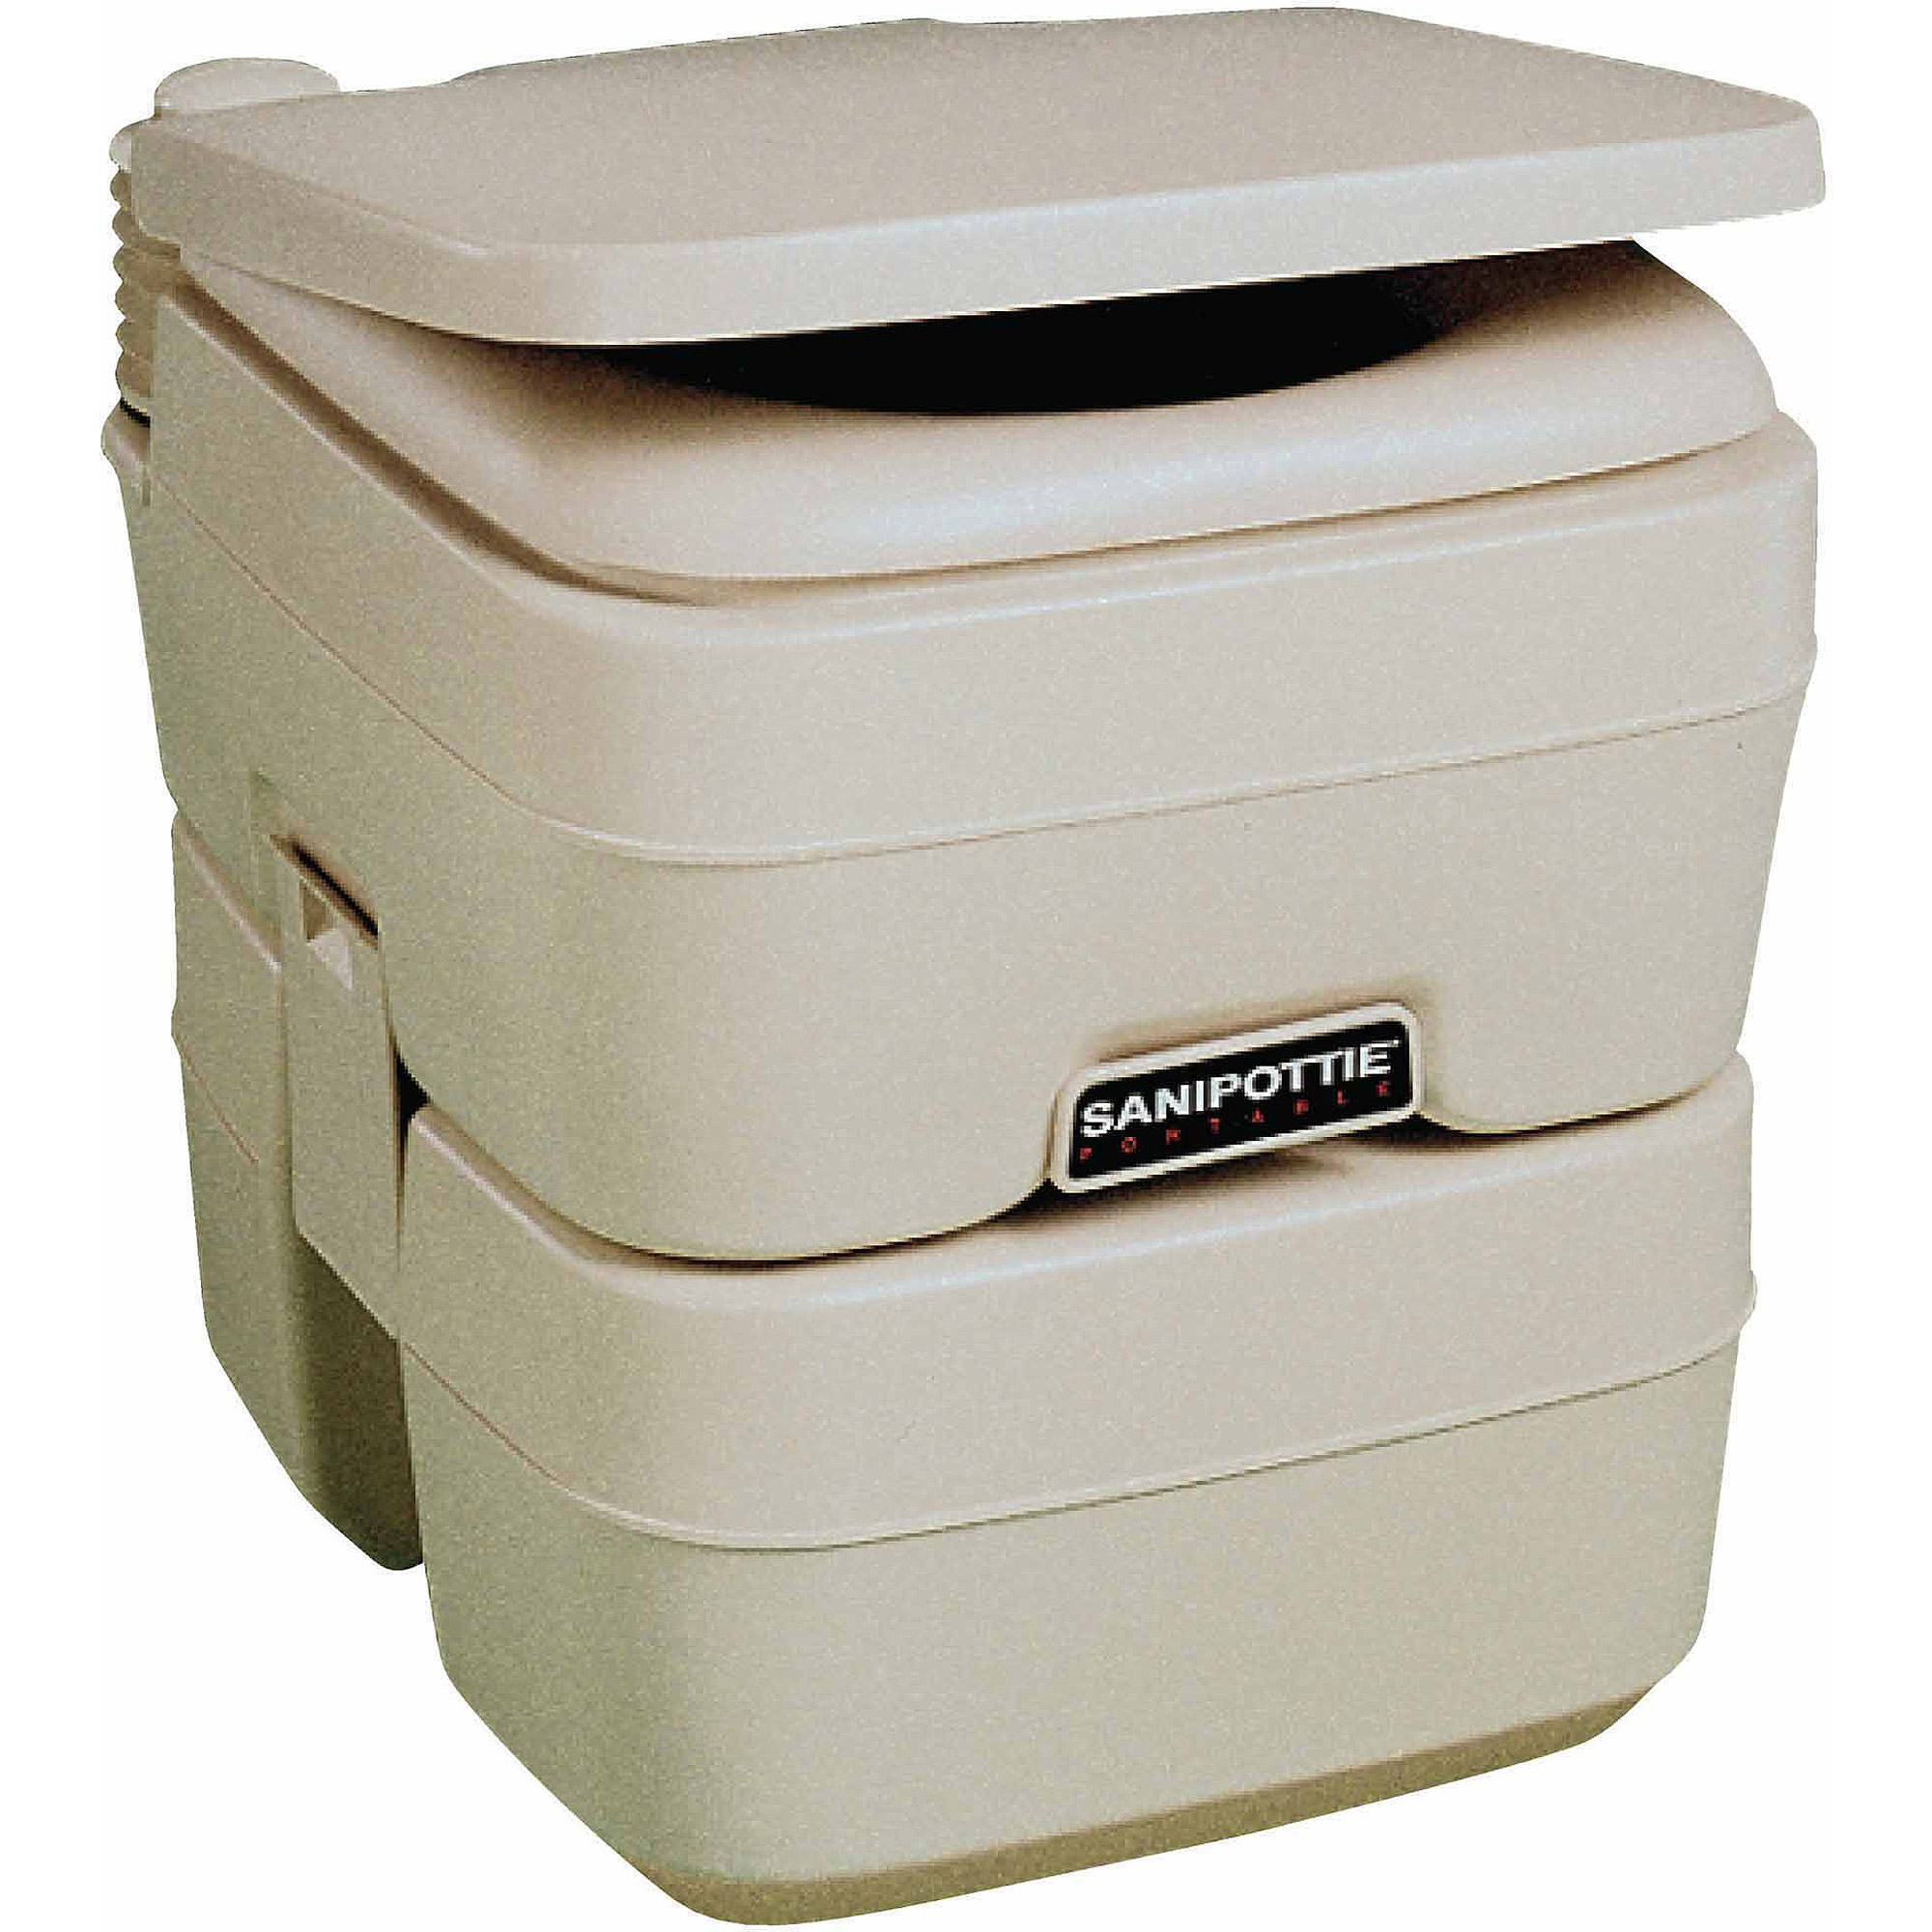 "SeaLand 5.0 Gallon SaniPottie 965MSD Portable Toilet with Mounting Brackets and 1-1/2"" MSD Fittings"